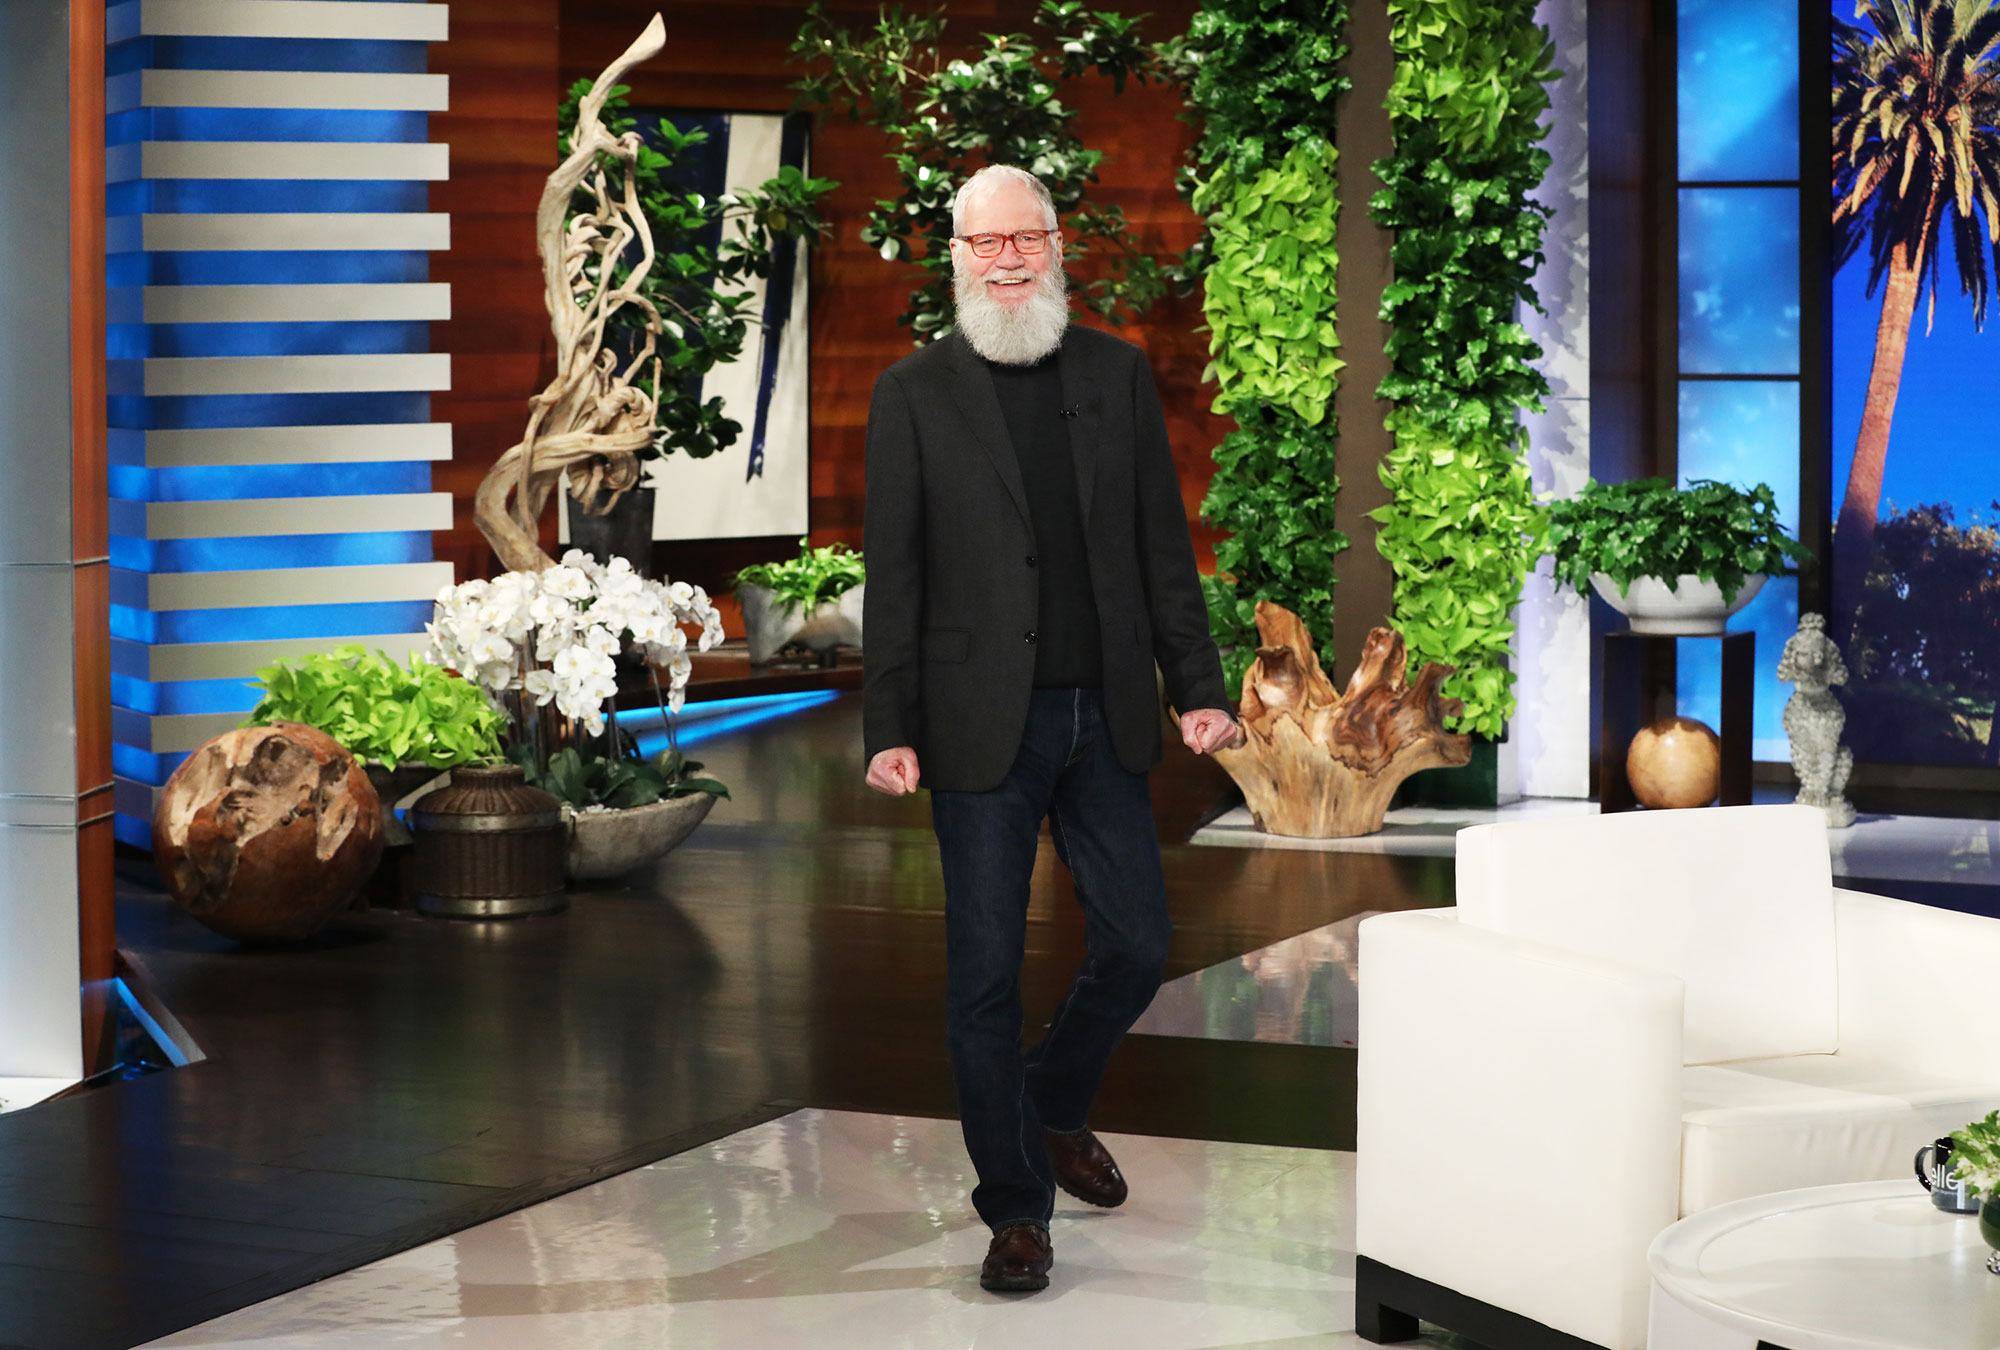 David Letterman Thought He Was Going to Prison for Throwing a Baseball Out a Window - David Letterman on The Ellen Show